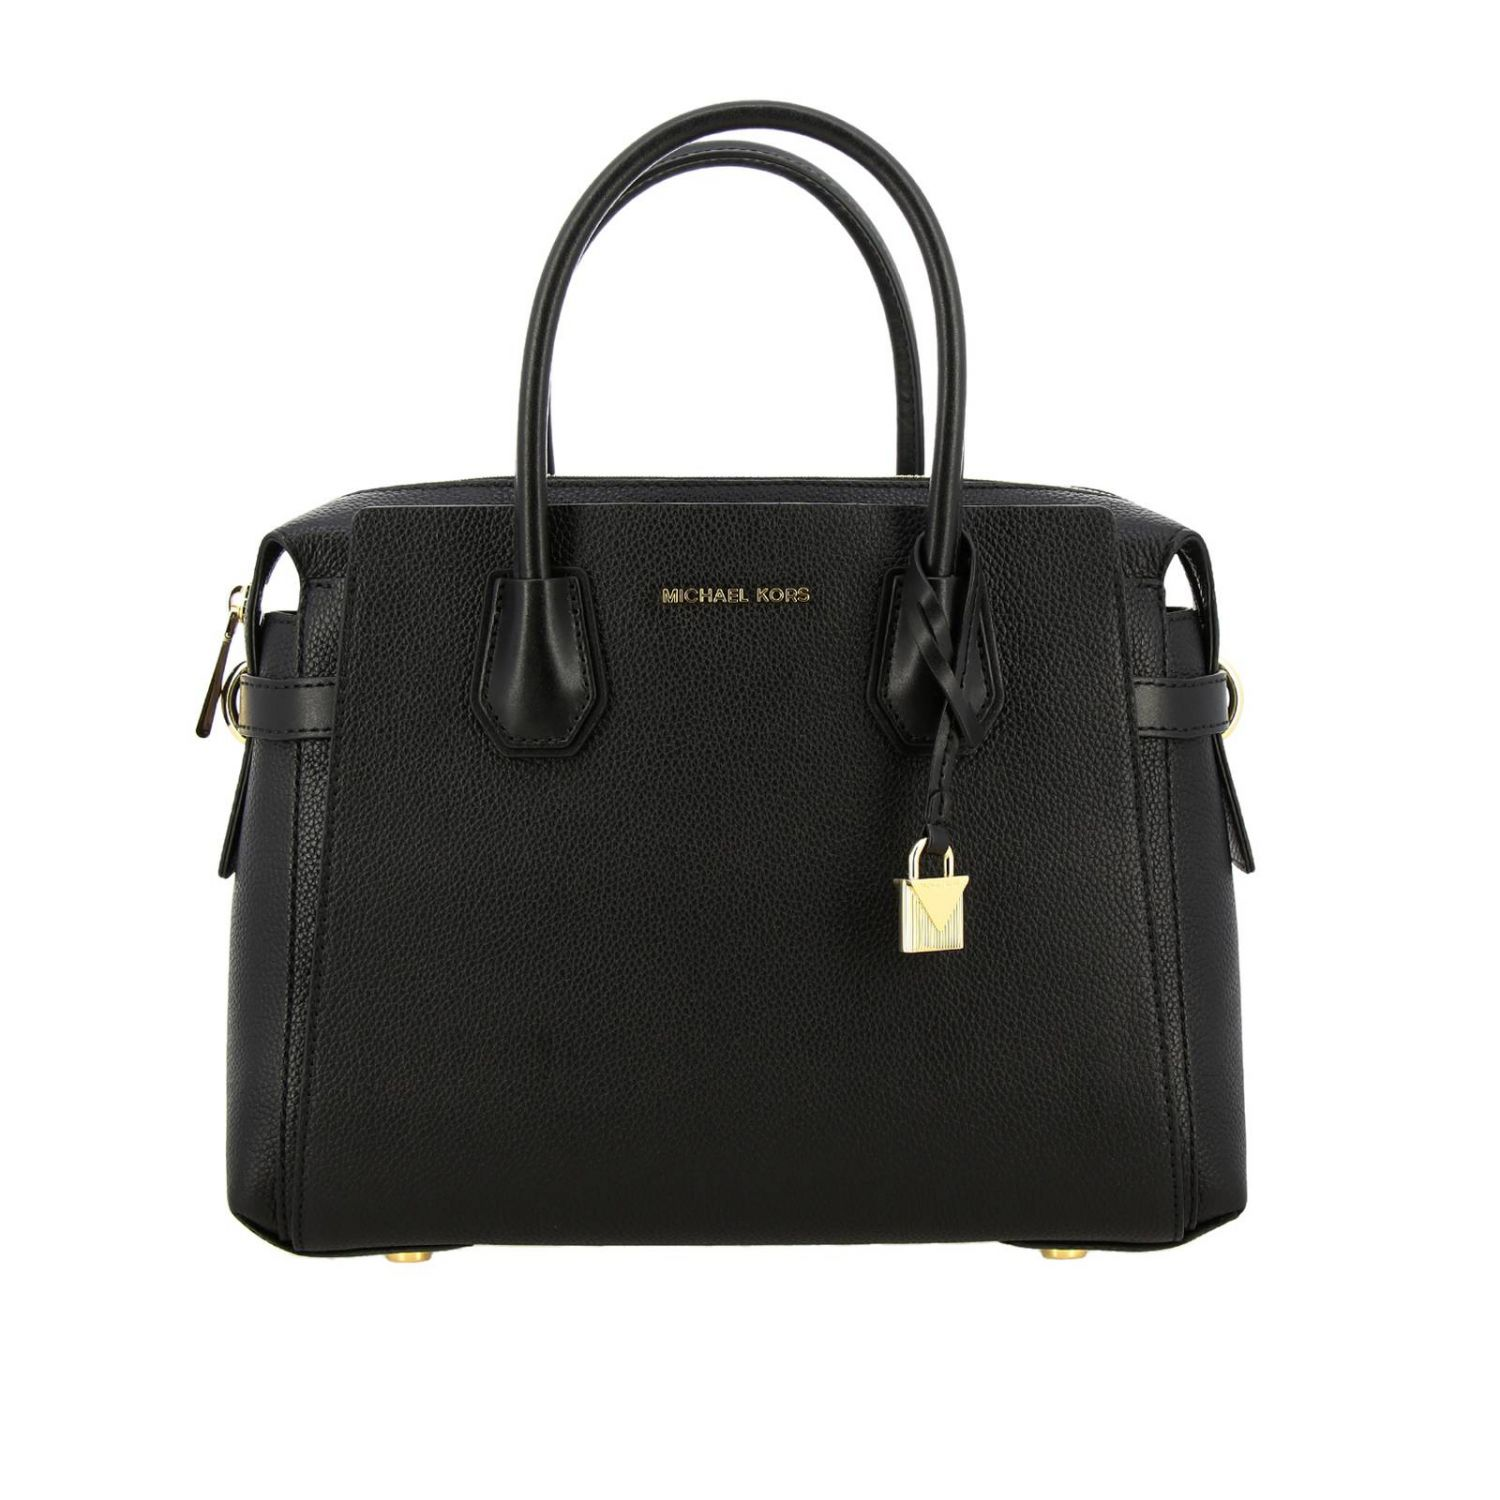 Mercer medium Michael Michael Kors bag in textured leather black 1